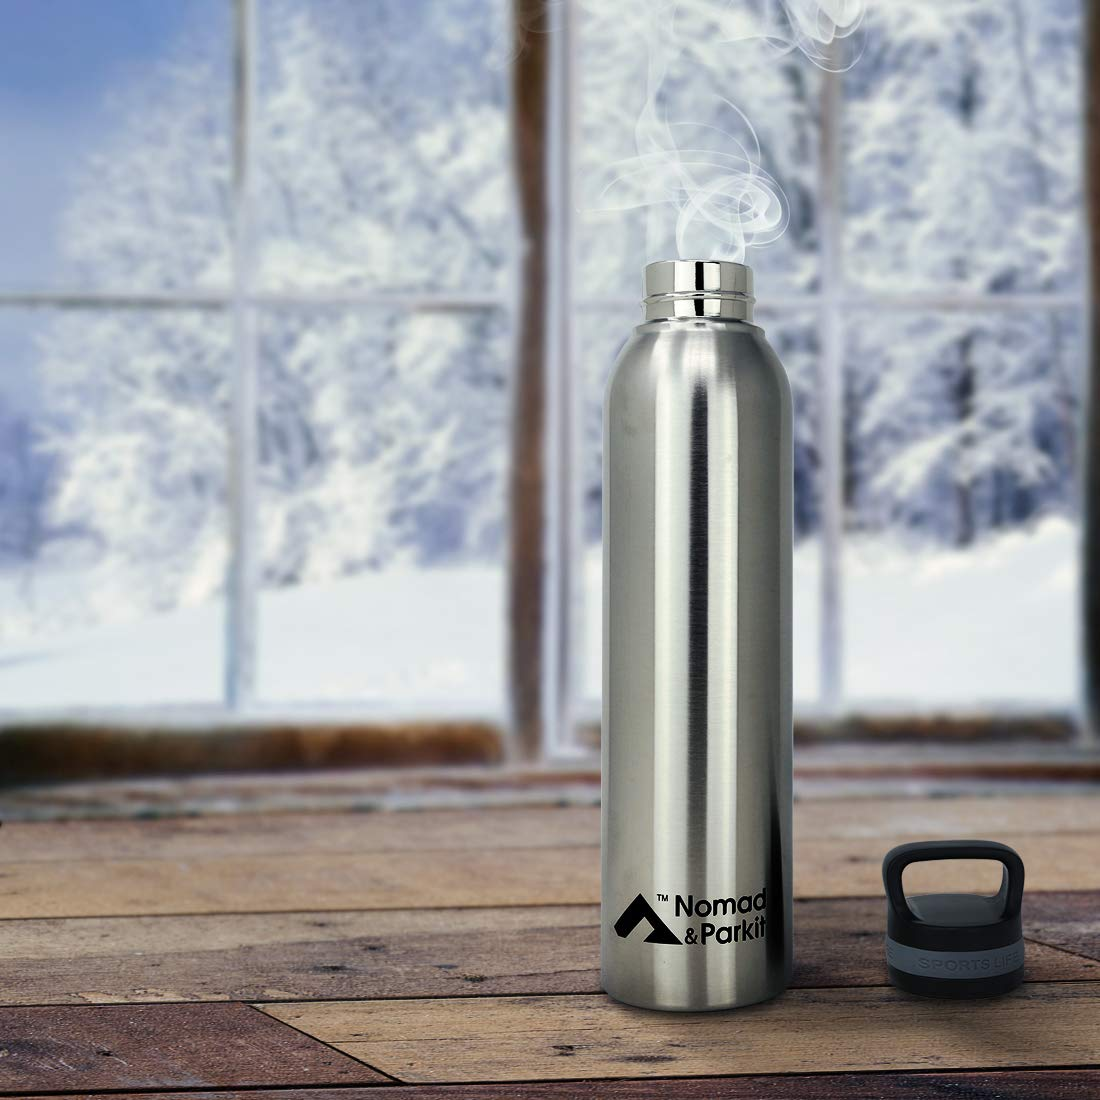 Nomad and Parkit Insulated Water Bottle /– Reusable Stainless Steel Thermal Lock Vacuum Insulated Travel Thermos with Leakproof Lid /– BPA-Free, Durable, Washable Portable Container for Cold, Hot Drinks 31.8